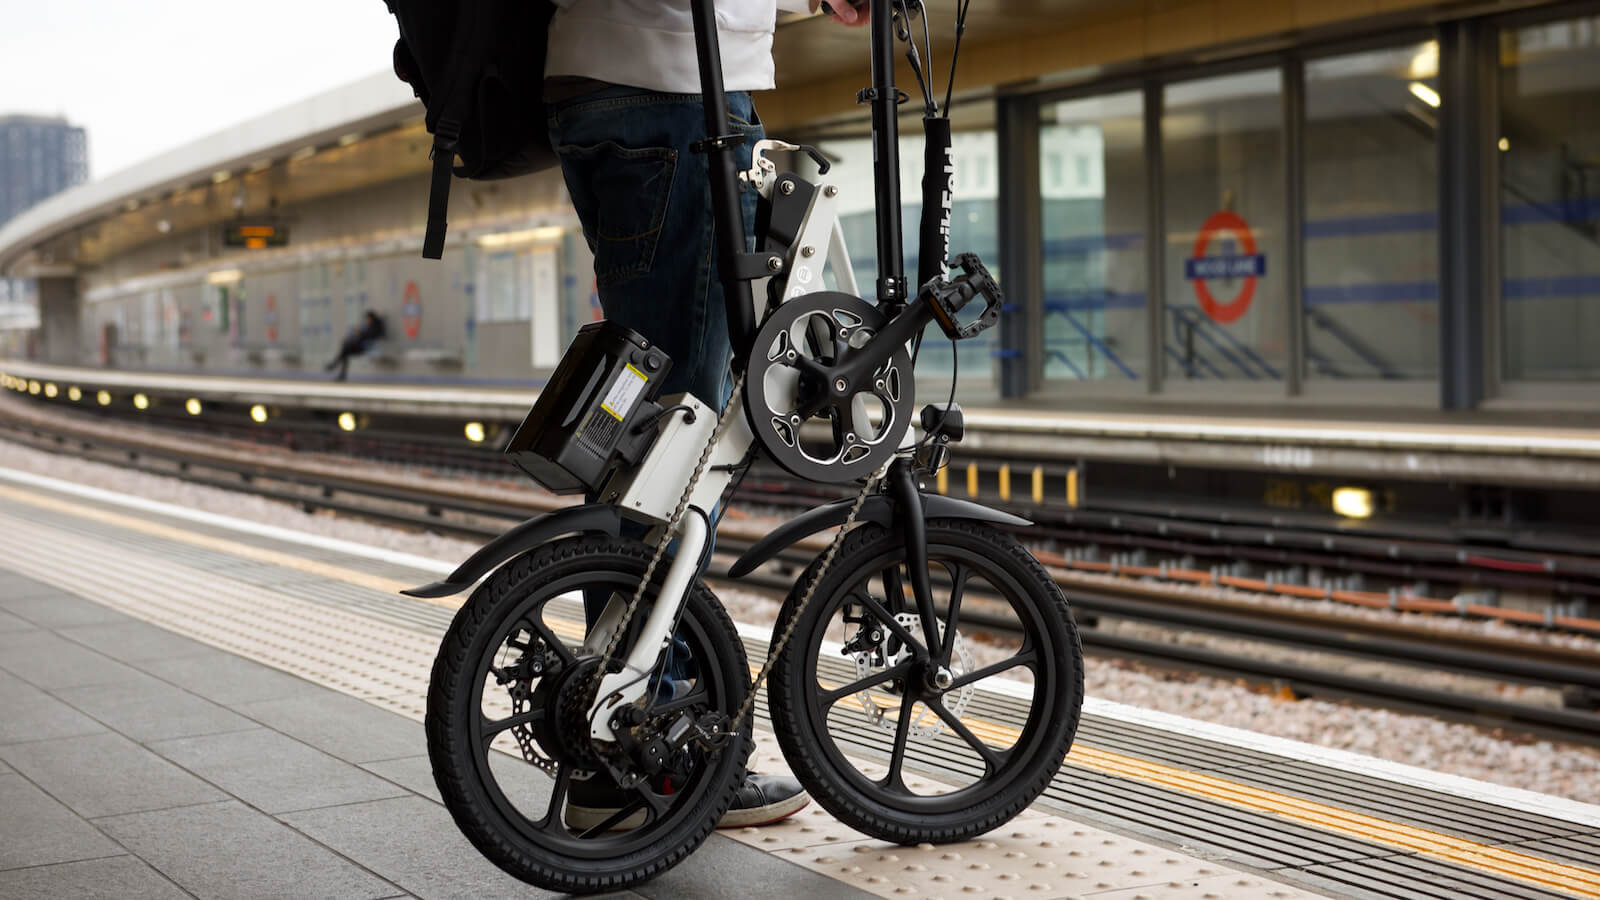 KwikFold X-ite 3A electric folding bike has an aluminum frame